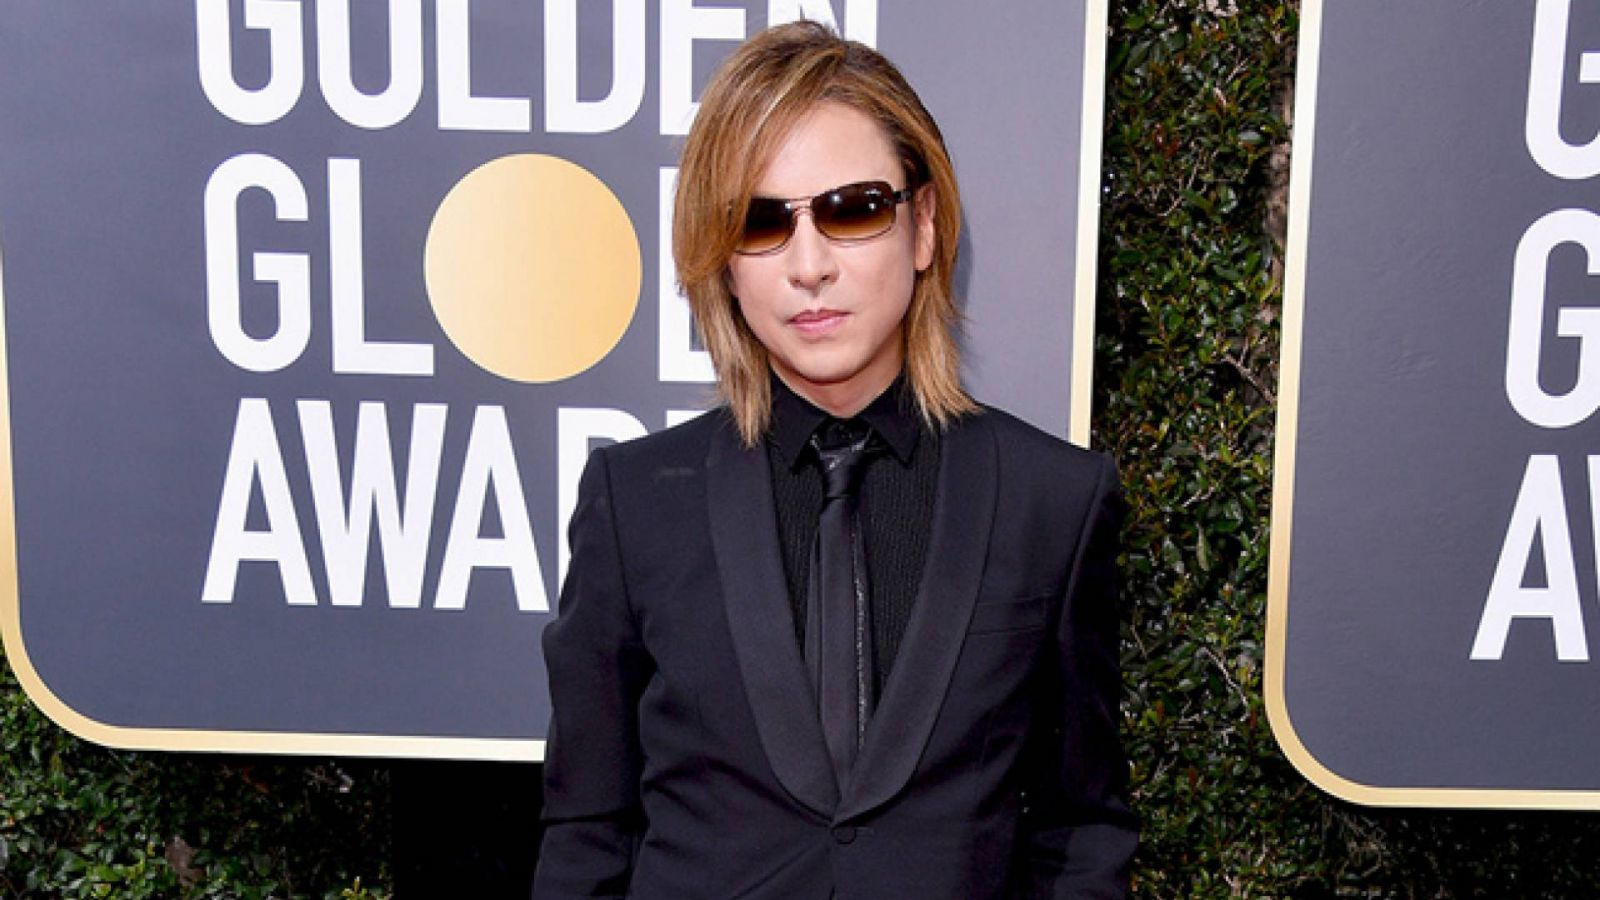 """YOSHIKI to Create Theme Song for New """"xXx 4"""" Film Starring Vin Diesel © George Pimentel/Getty Images"""